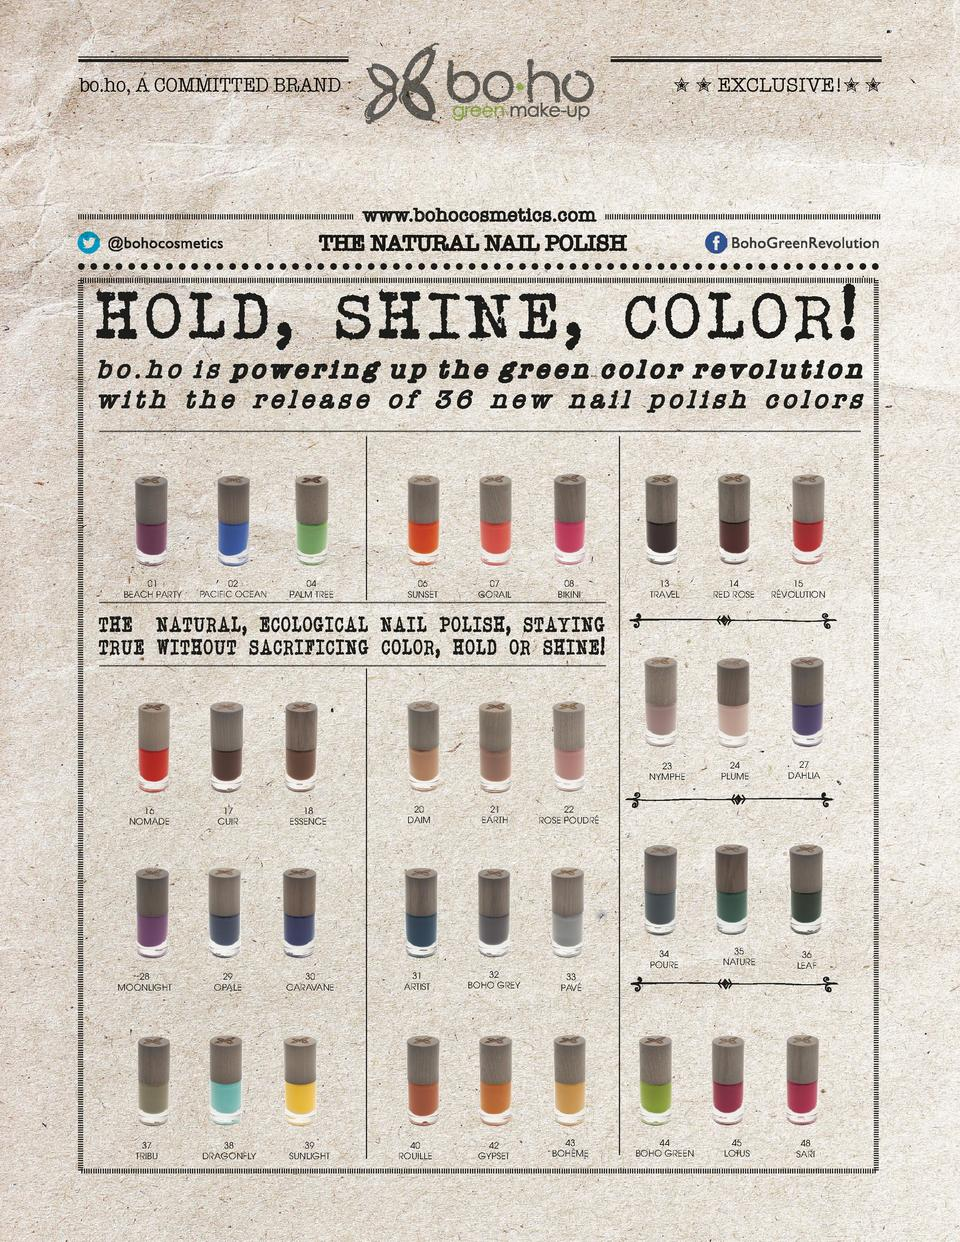 bo.ho, A COMMITTED BRAND          EXCLUSIVE          www.bohocosmetics.com  THE NATURAL NAIL POLISH  HOLD, SHINE, COLOR   ...